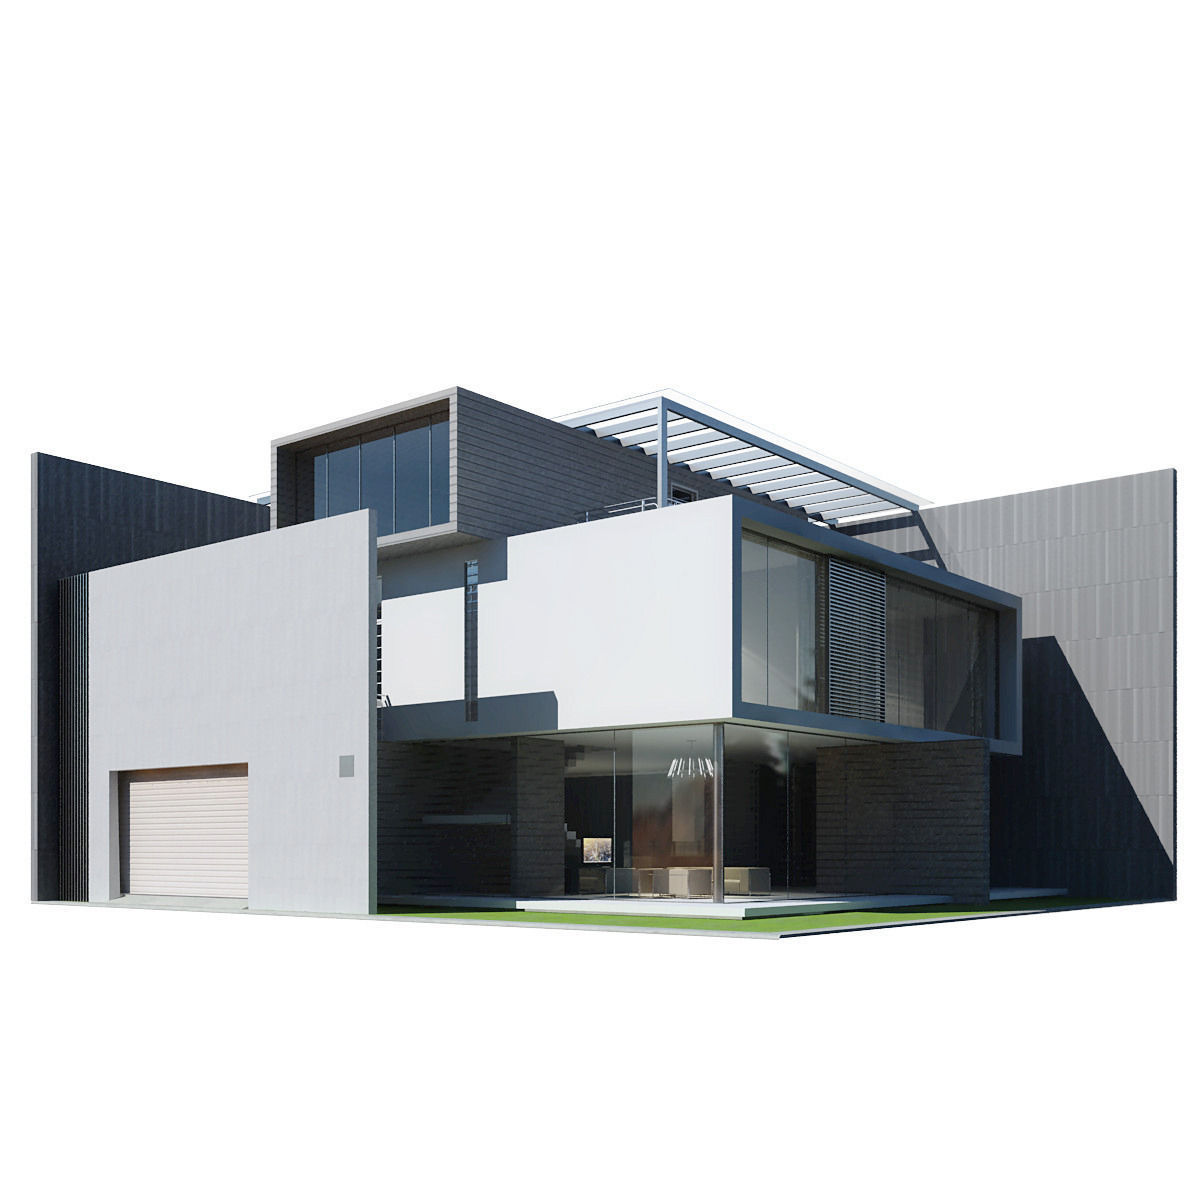 Modern house 3d model max obj 3ds fbx for Exterior 3d model